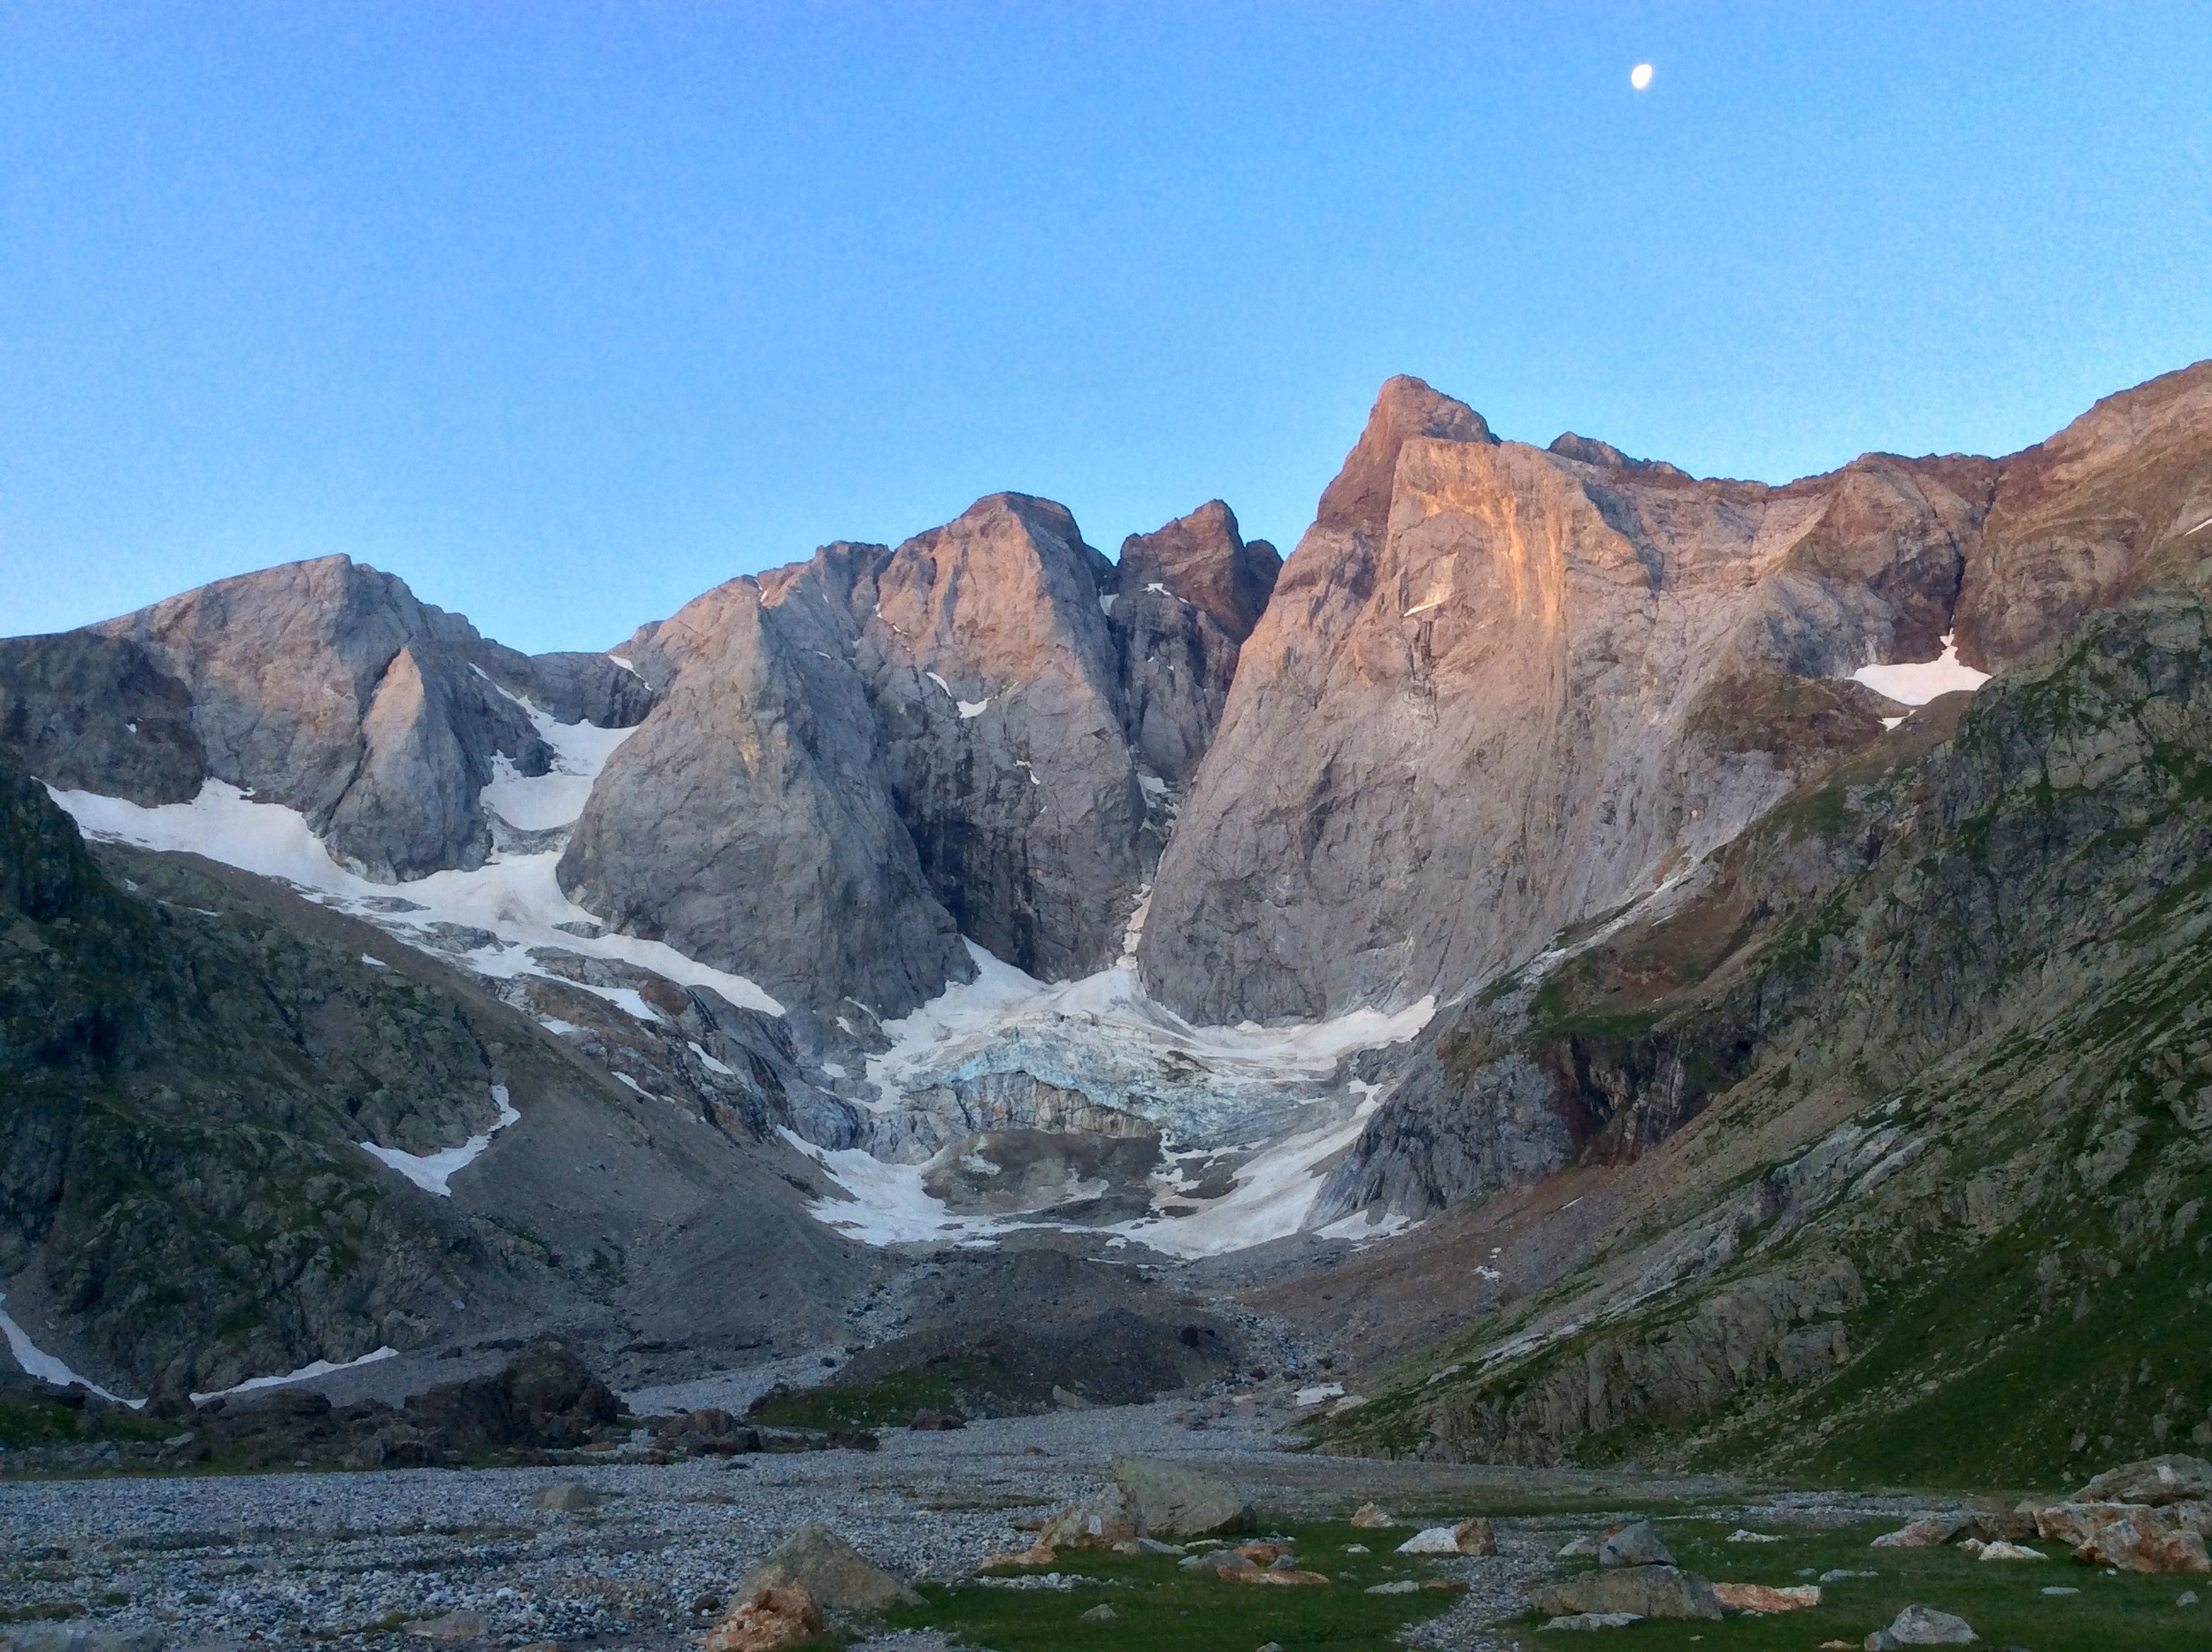 The north face of the Vignemale massif at sunset